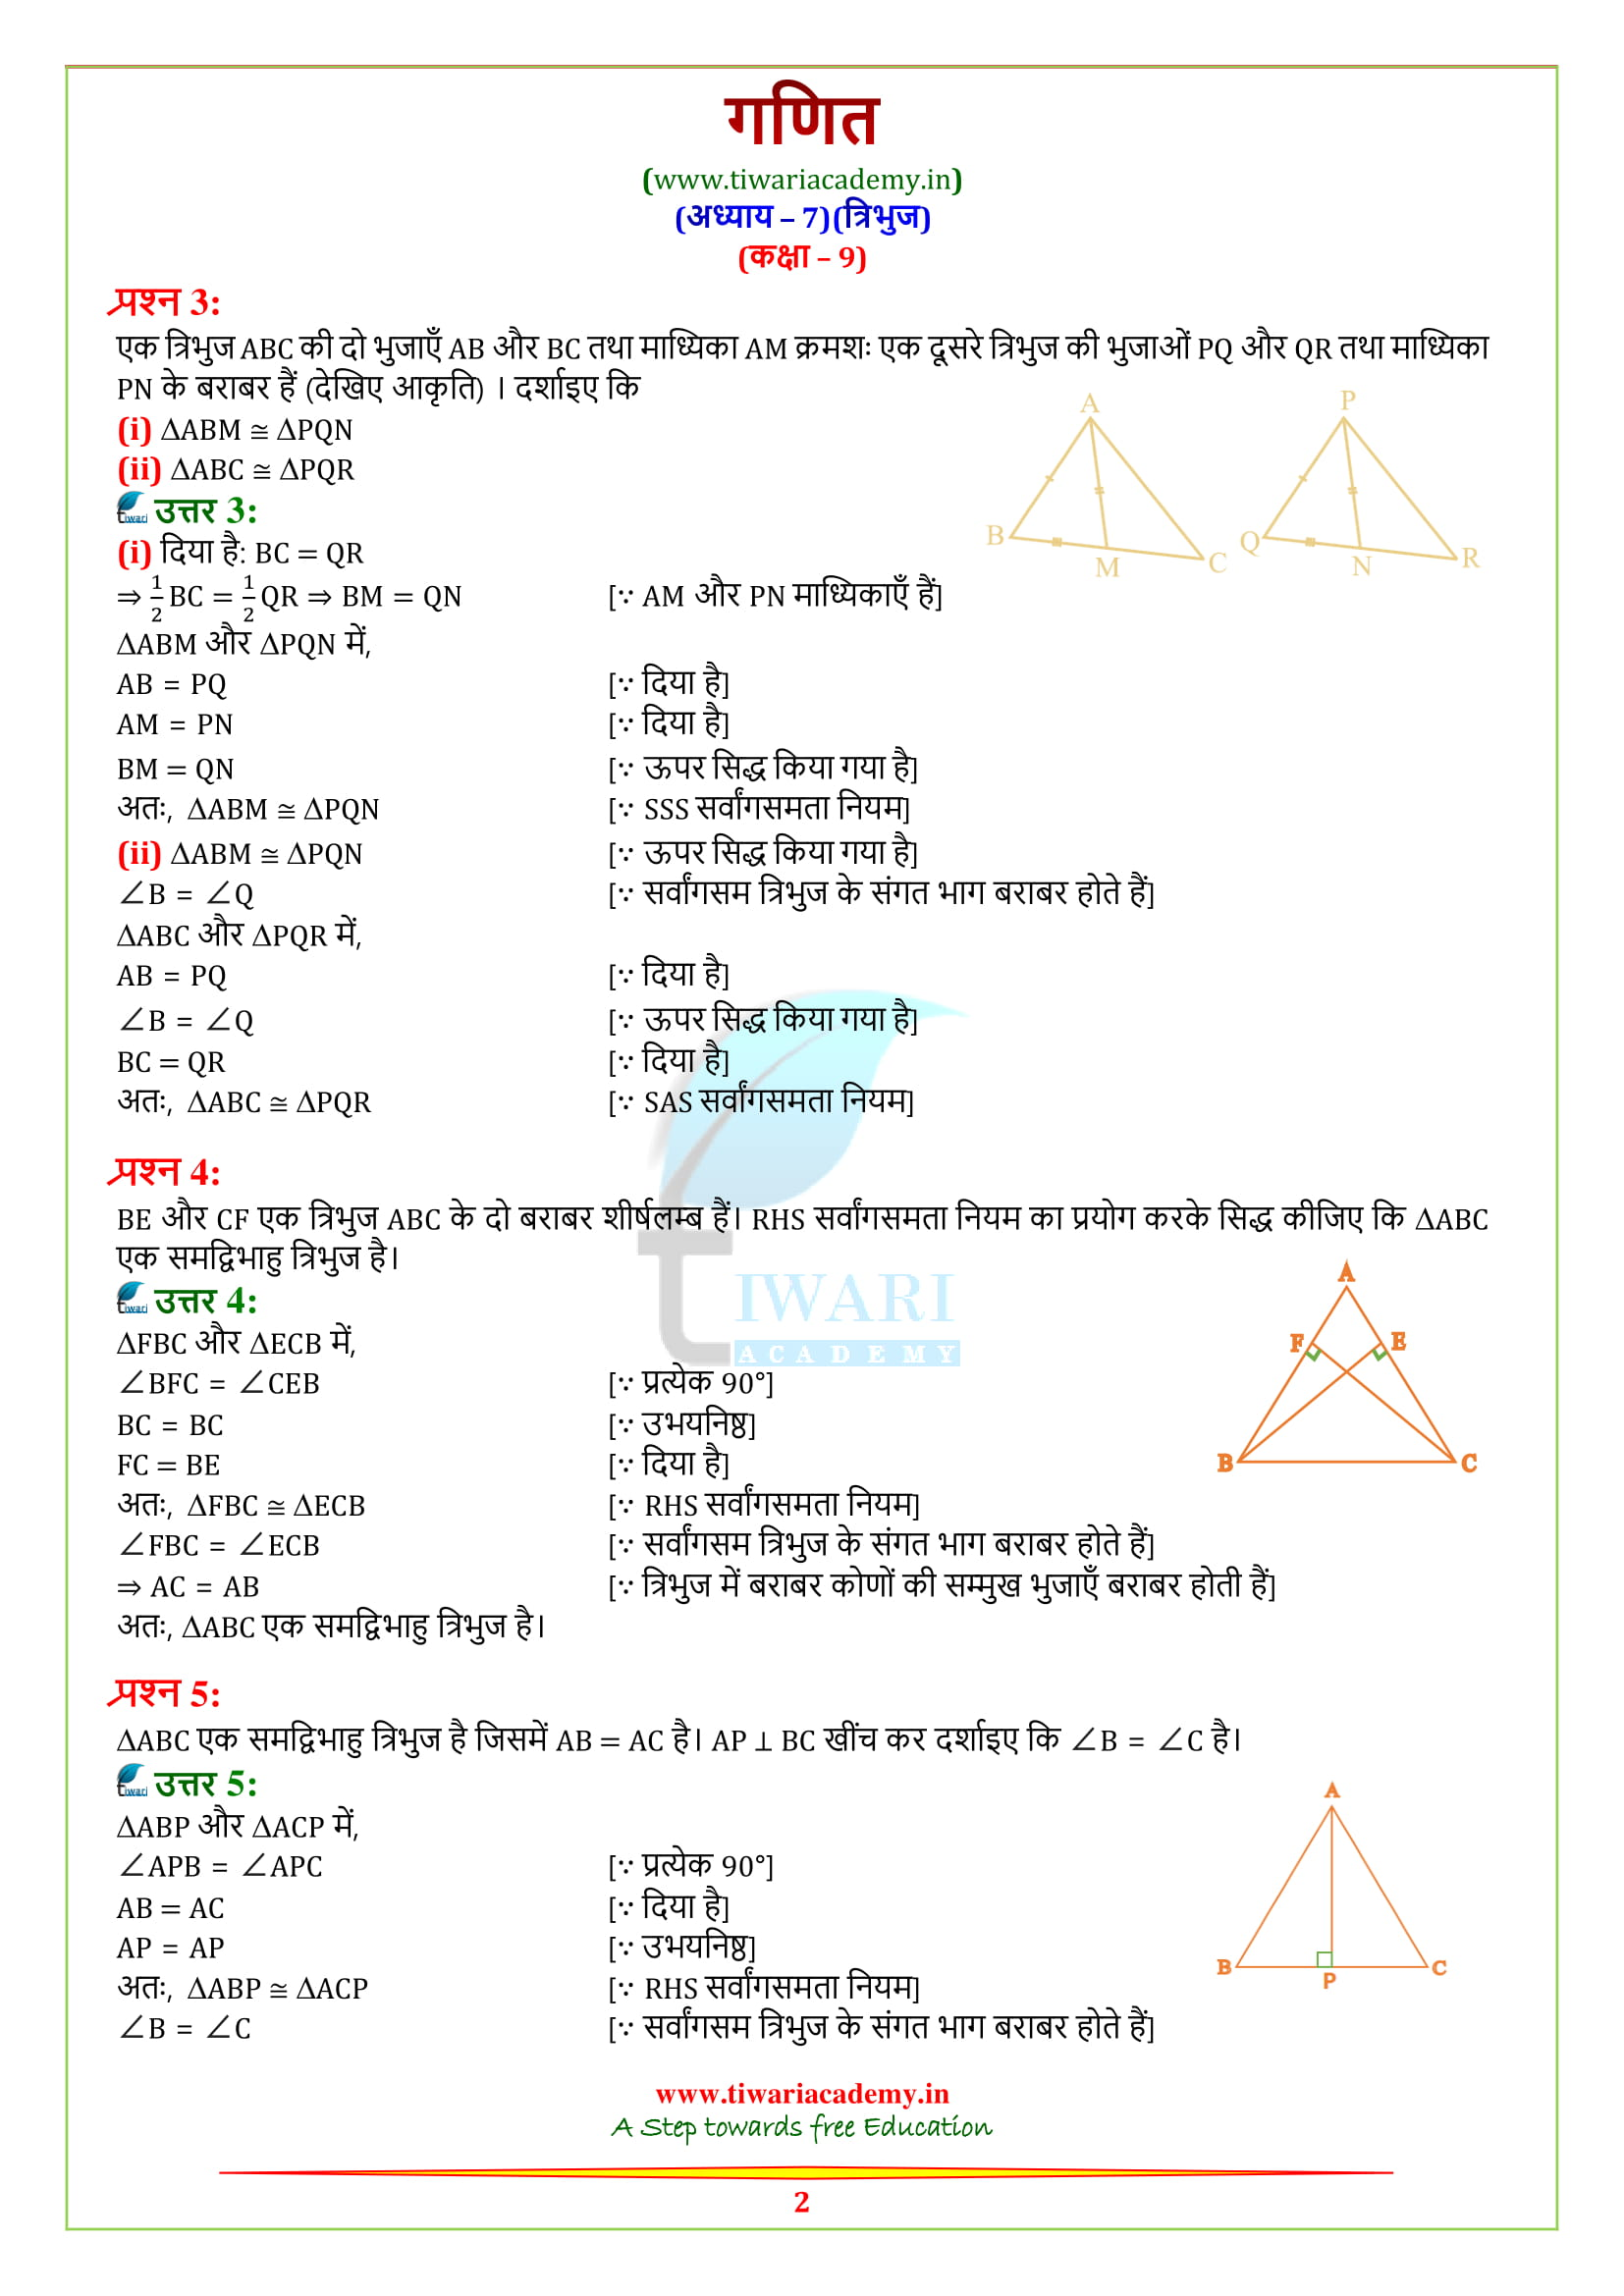 9 Maths Exercise 7.3 solutions question answers